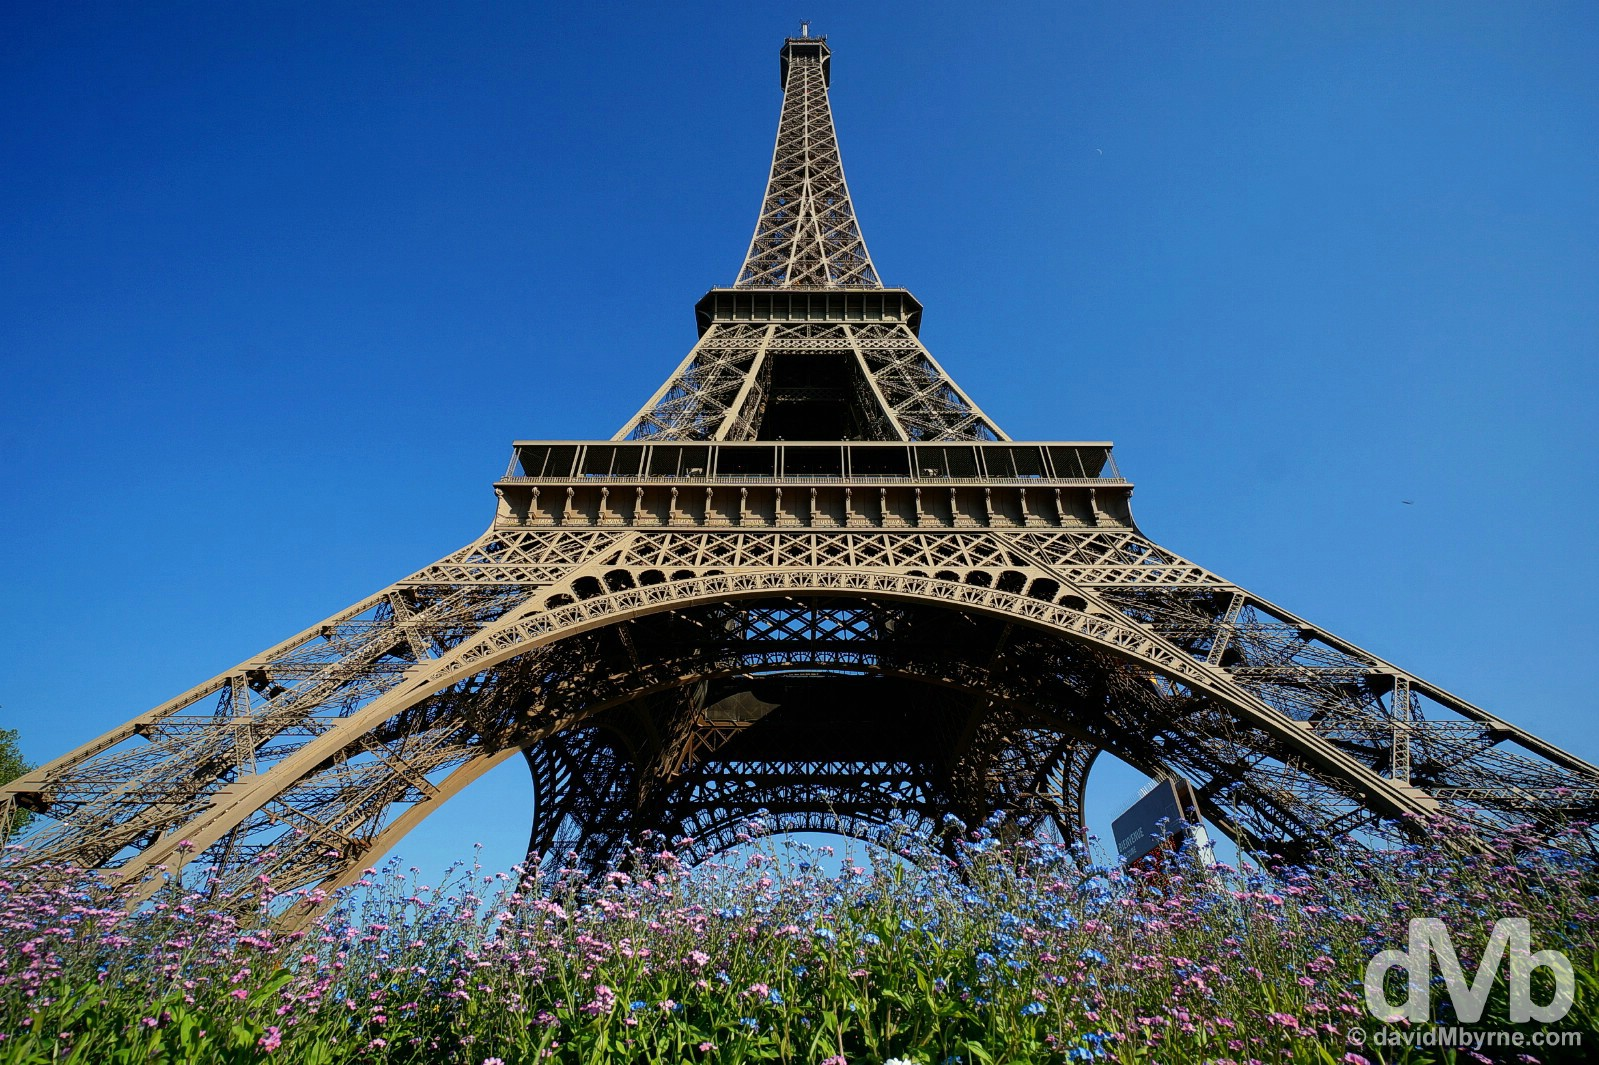 Eiffel Tower, Paris, France. April 23, 2015.